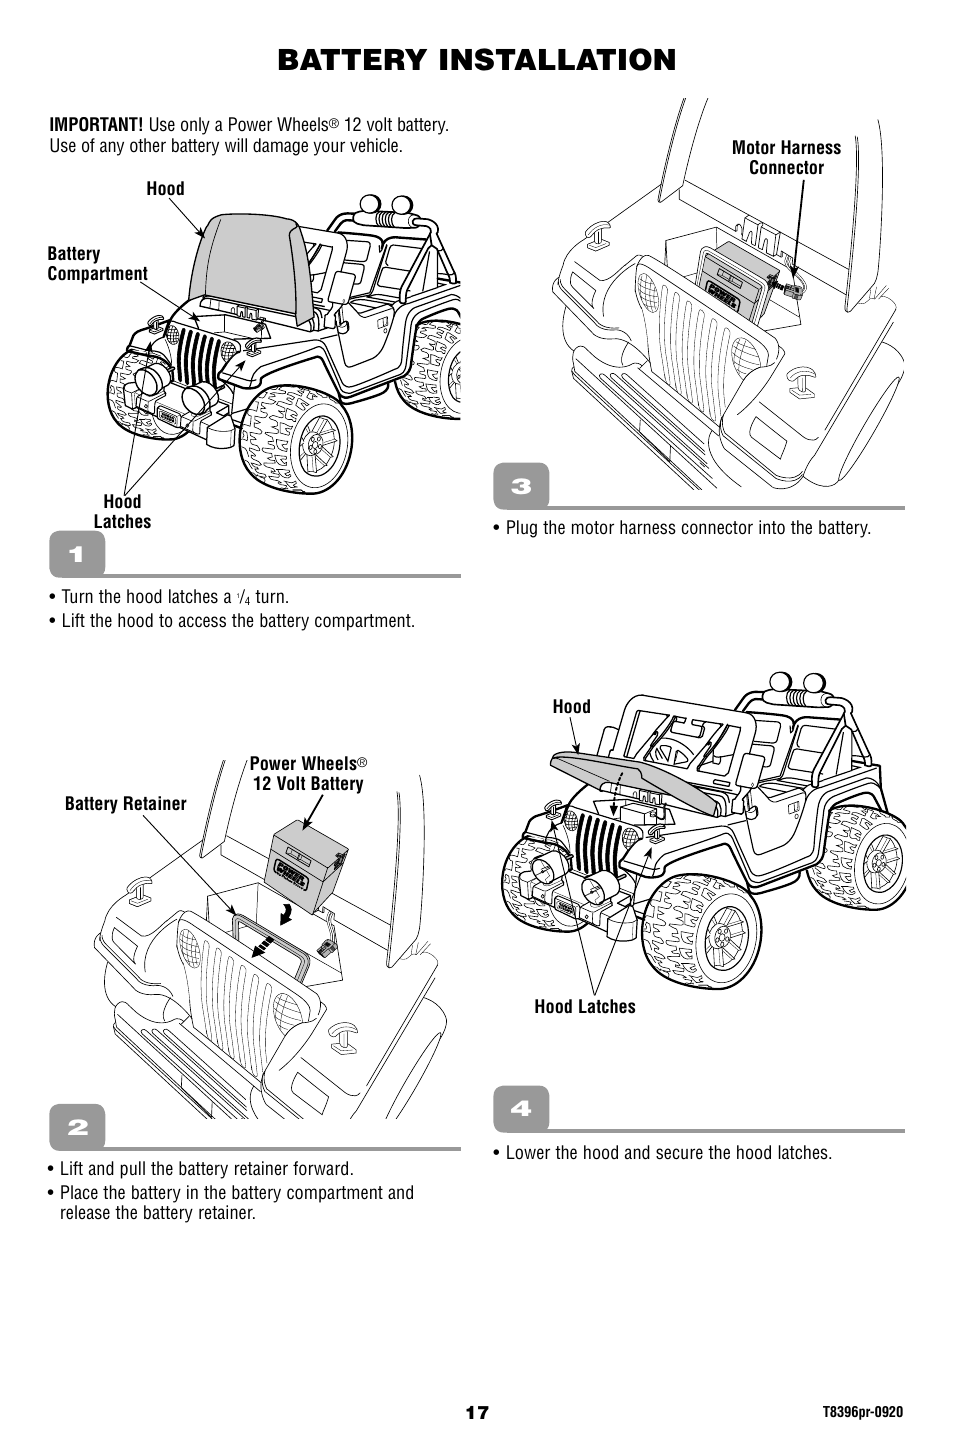 Barbie Jeep Wiring Harness Diagram on jeep hoses diagram, jeep wiring harness problem, ignition switch diagram, 93 jeep yj wiring diagram, 1990 jeep wiring diagram, jeep to chevy wiring harness, jeep tj instrument cluster wiring diagram, jeep distributor parts diagram, jeep wiring harness connector bulk, jeep cj7 wiring-diagram, jeep patriot hid headlights, jeep fuel tank diagram, 1965 jeep wiring diagram, 1973 jeep wiring diagram, jeep exhaust system diagram, 99 jeep tj wiring diagram, jeep horn diagram, jeep pulley diagram, jeep electrical diagram, jeep headlight diagram,